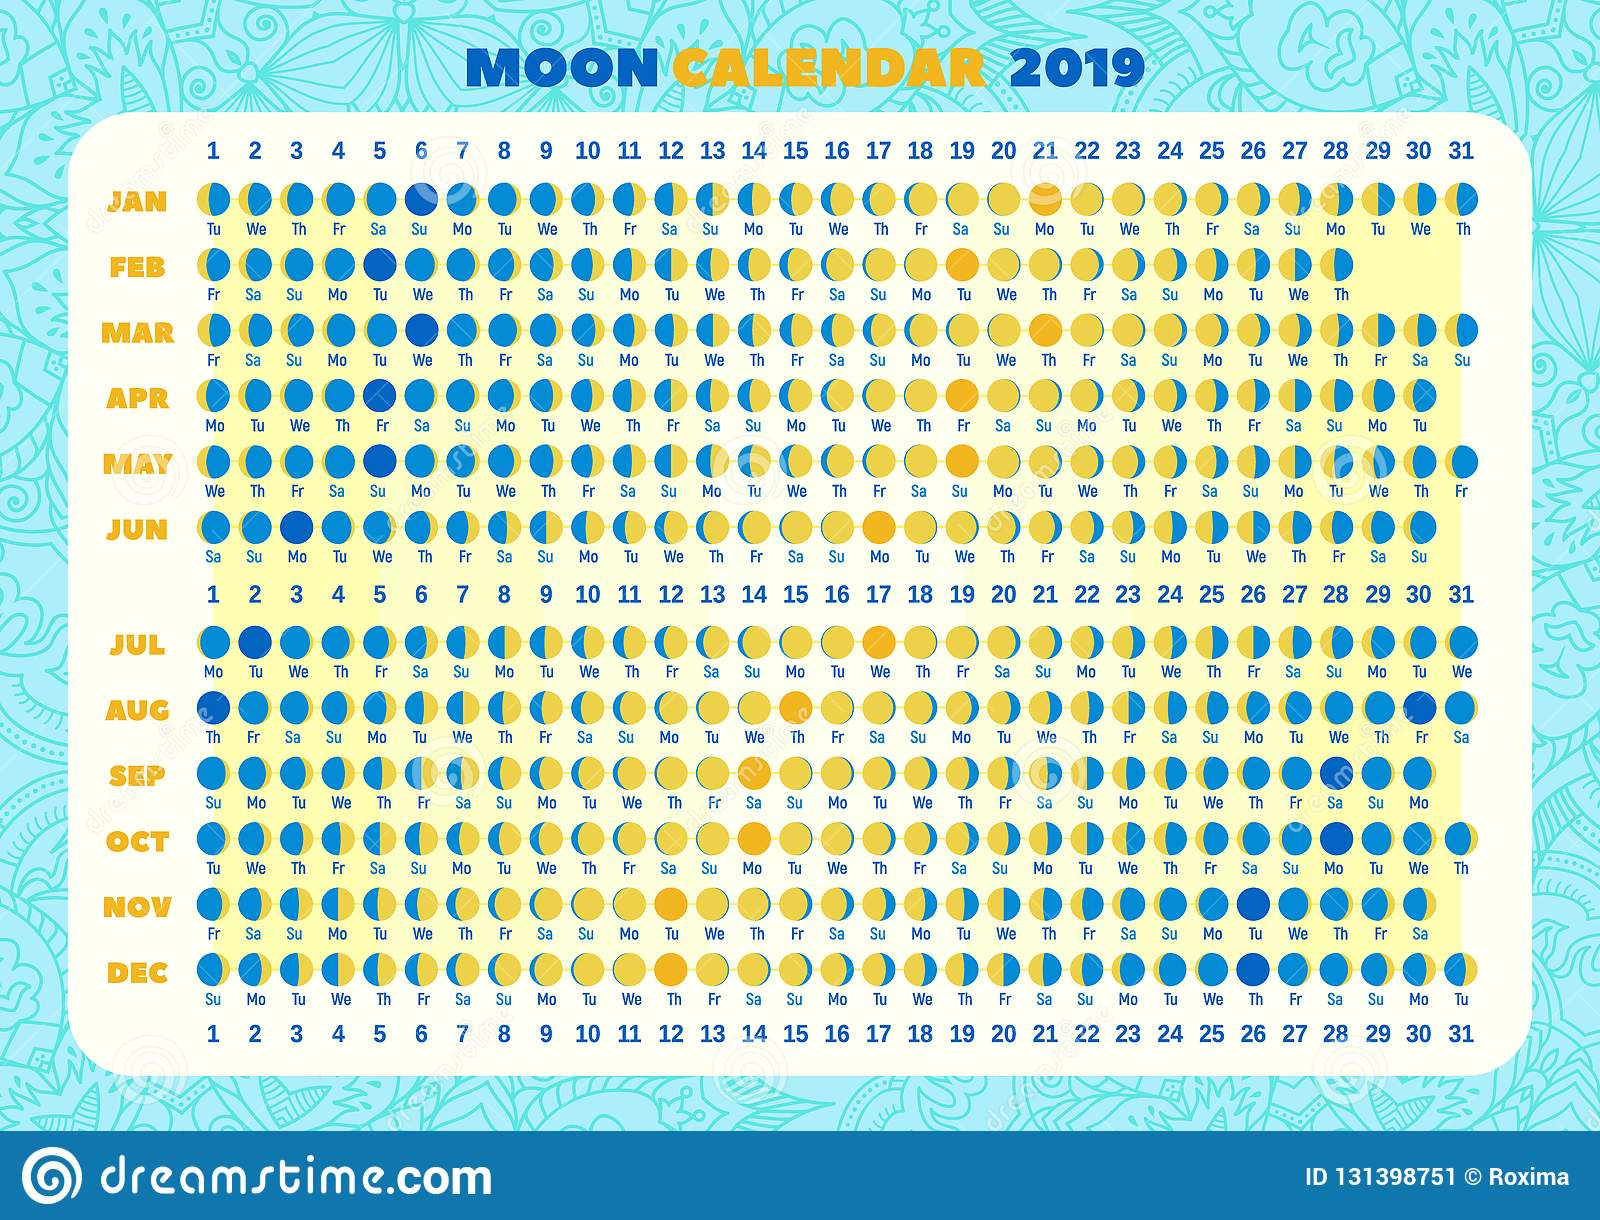 Alendar Of Moon Phases For Each Day Stock Vector - Illustration of